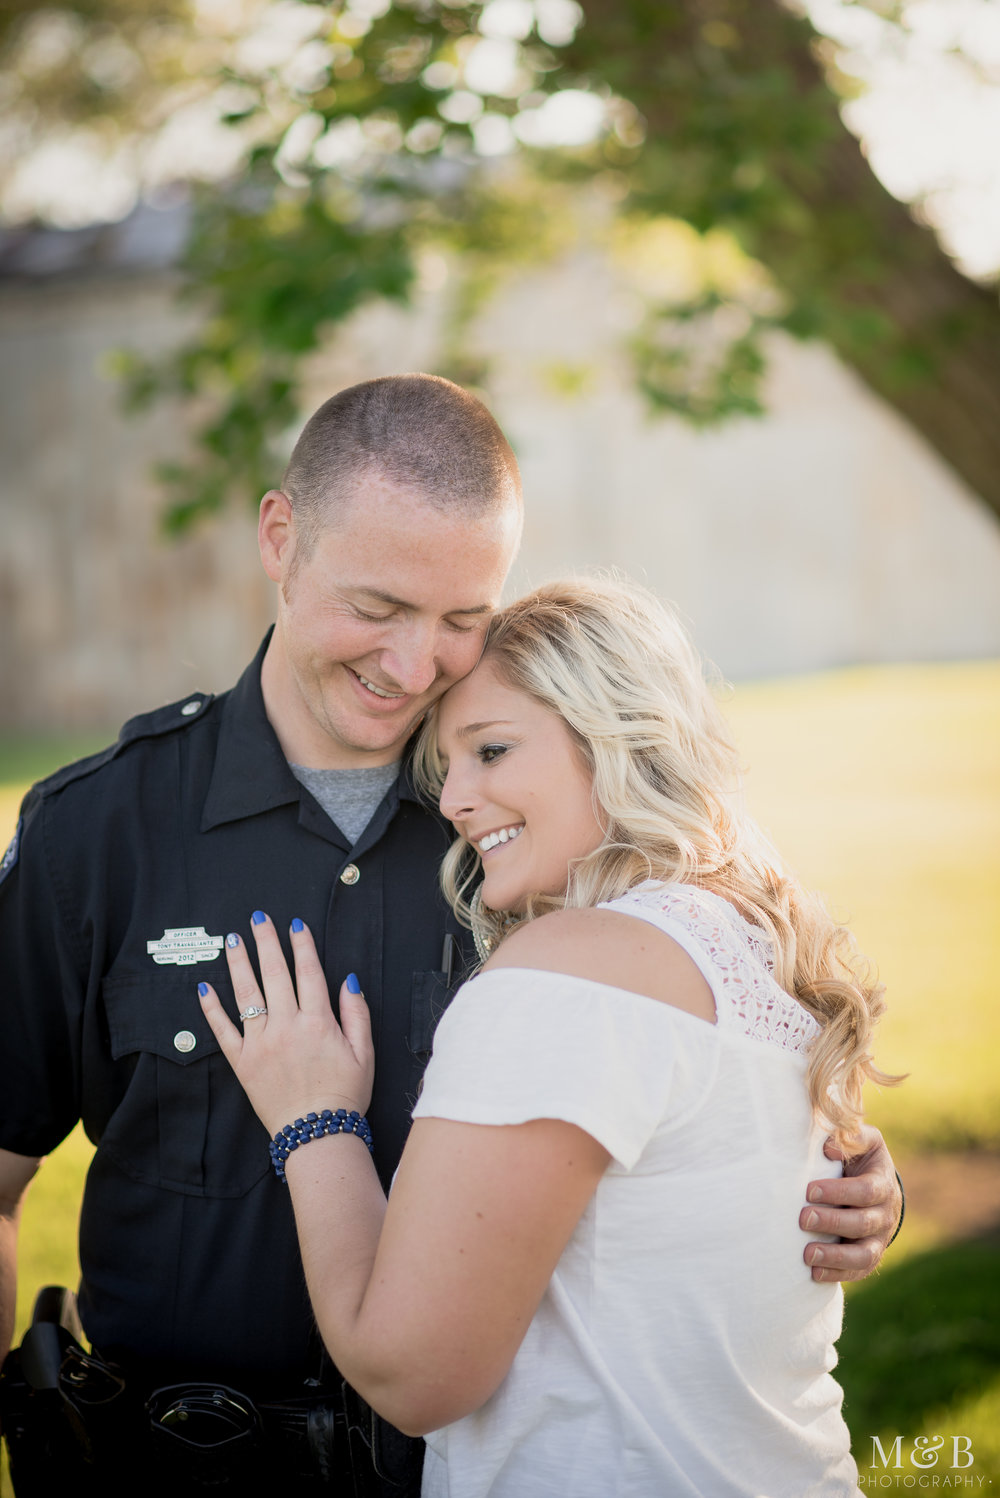 Emilee & Tony Extended Preview (9 of 19).jpg